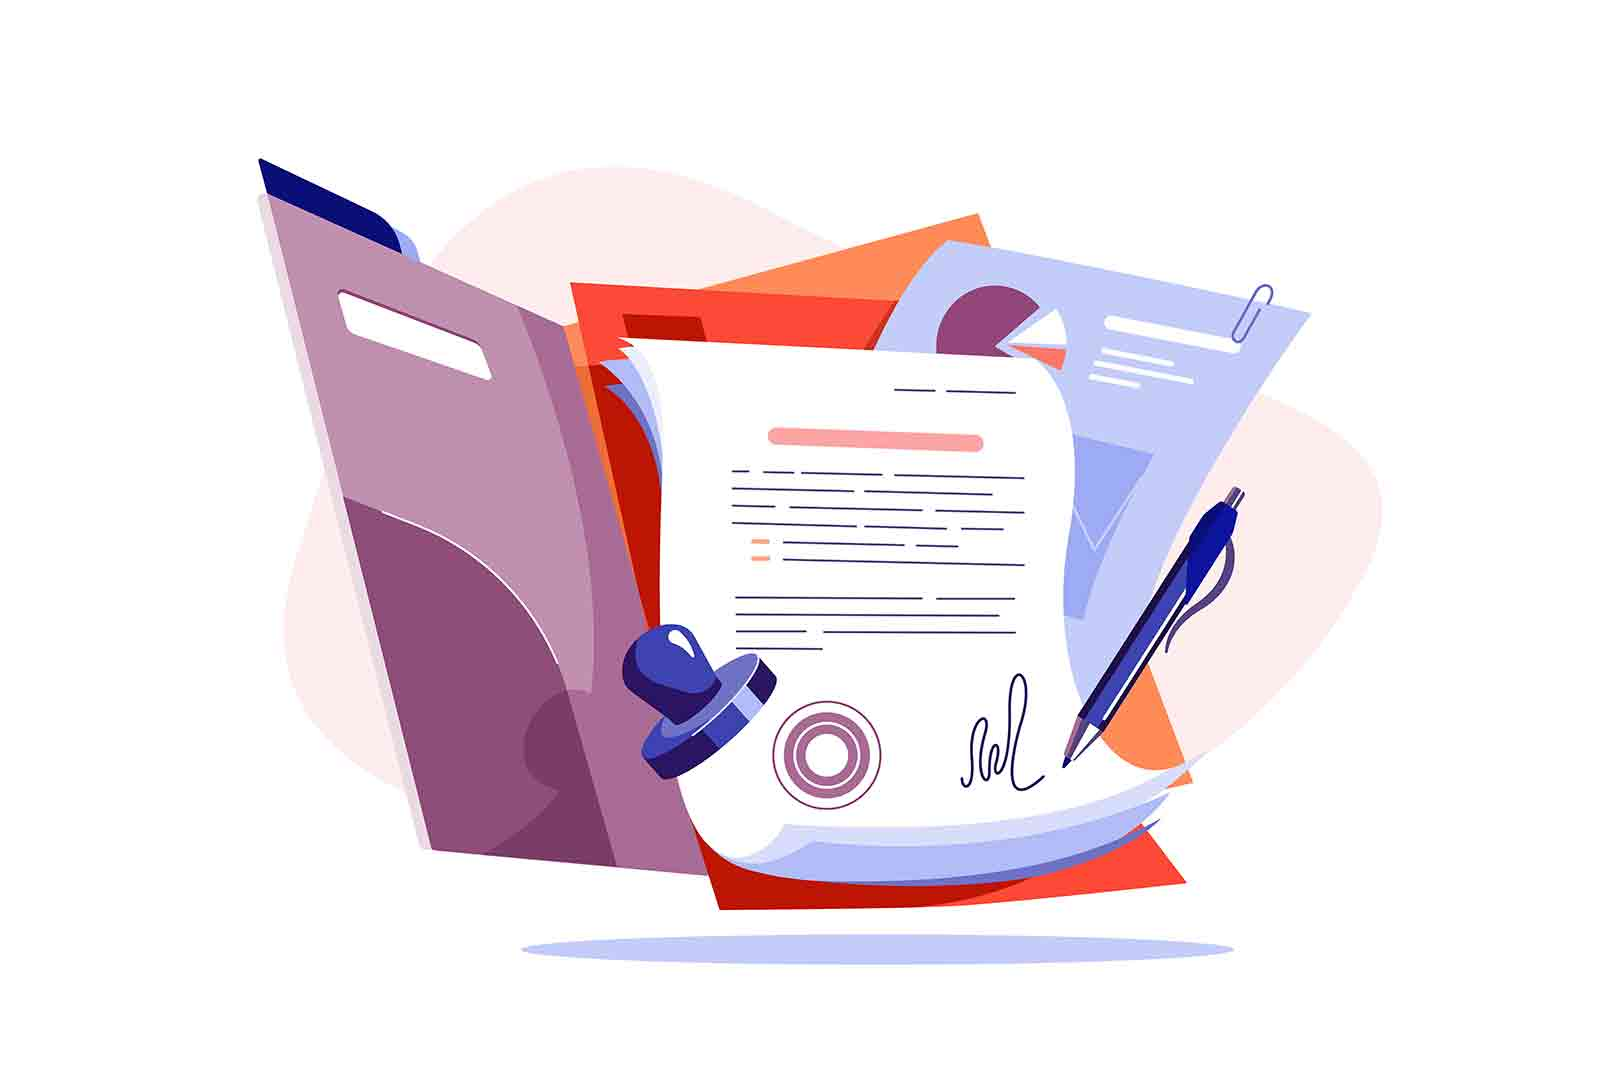 Paper for new business contract vector illustration. Successful work deal with stamp flat style. Agreement, signature, deal, success concept